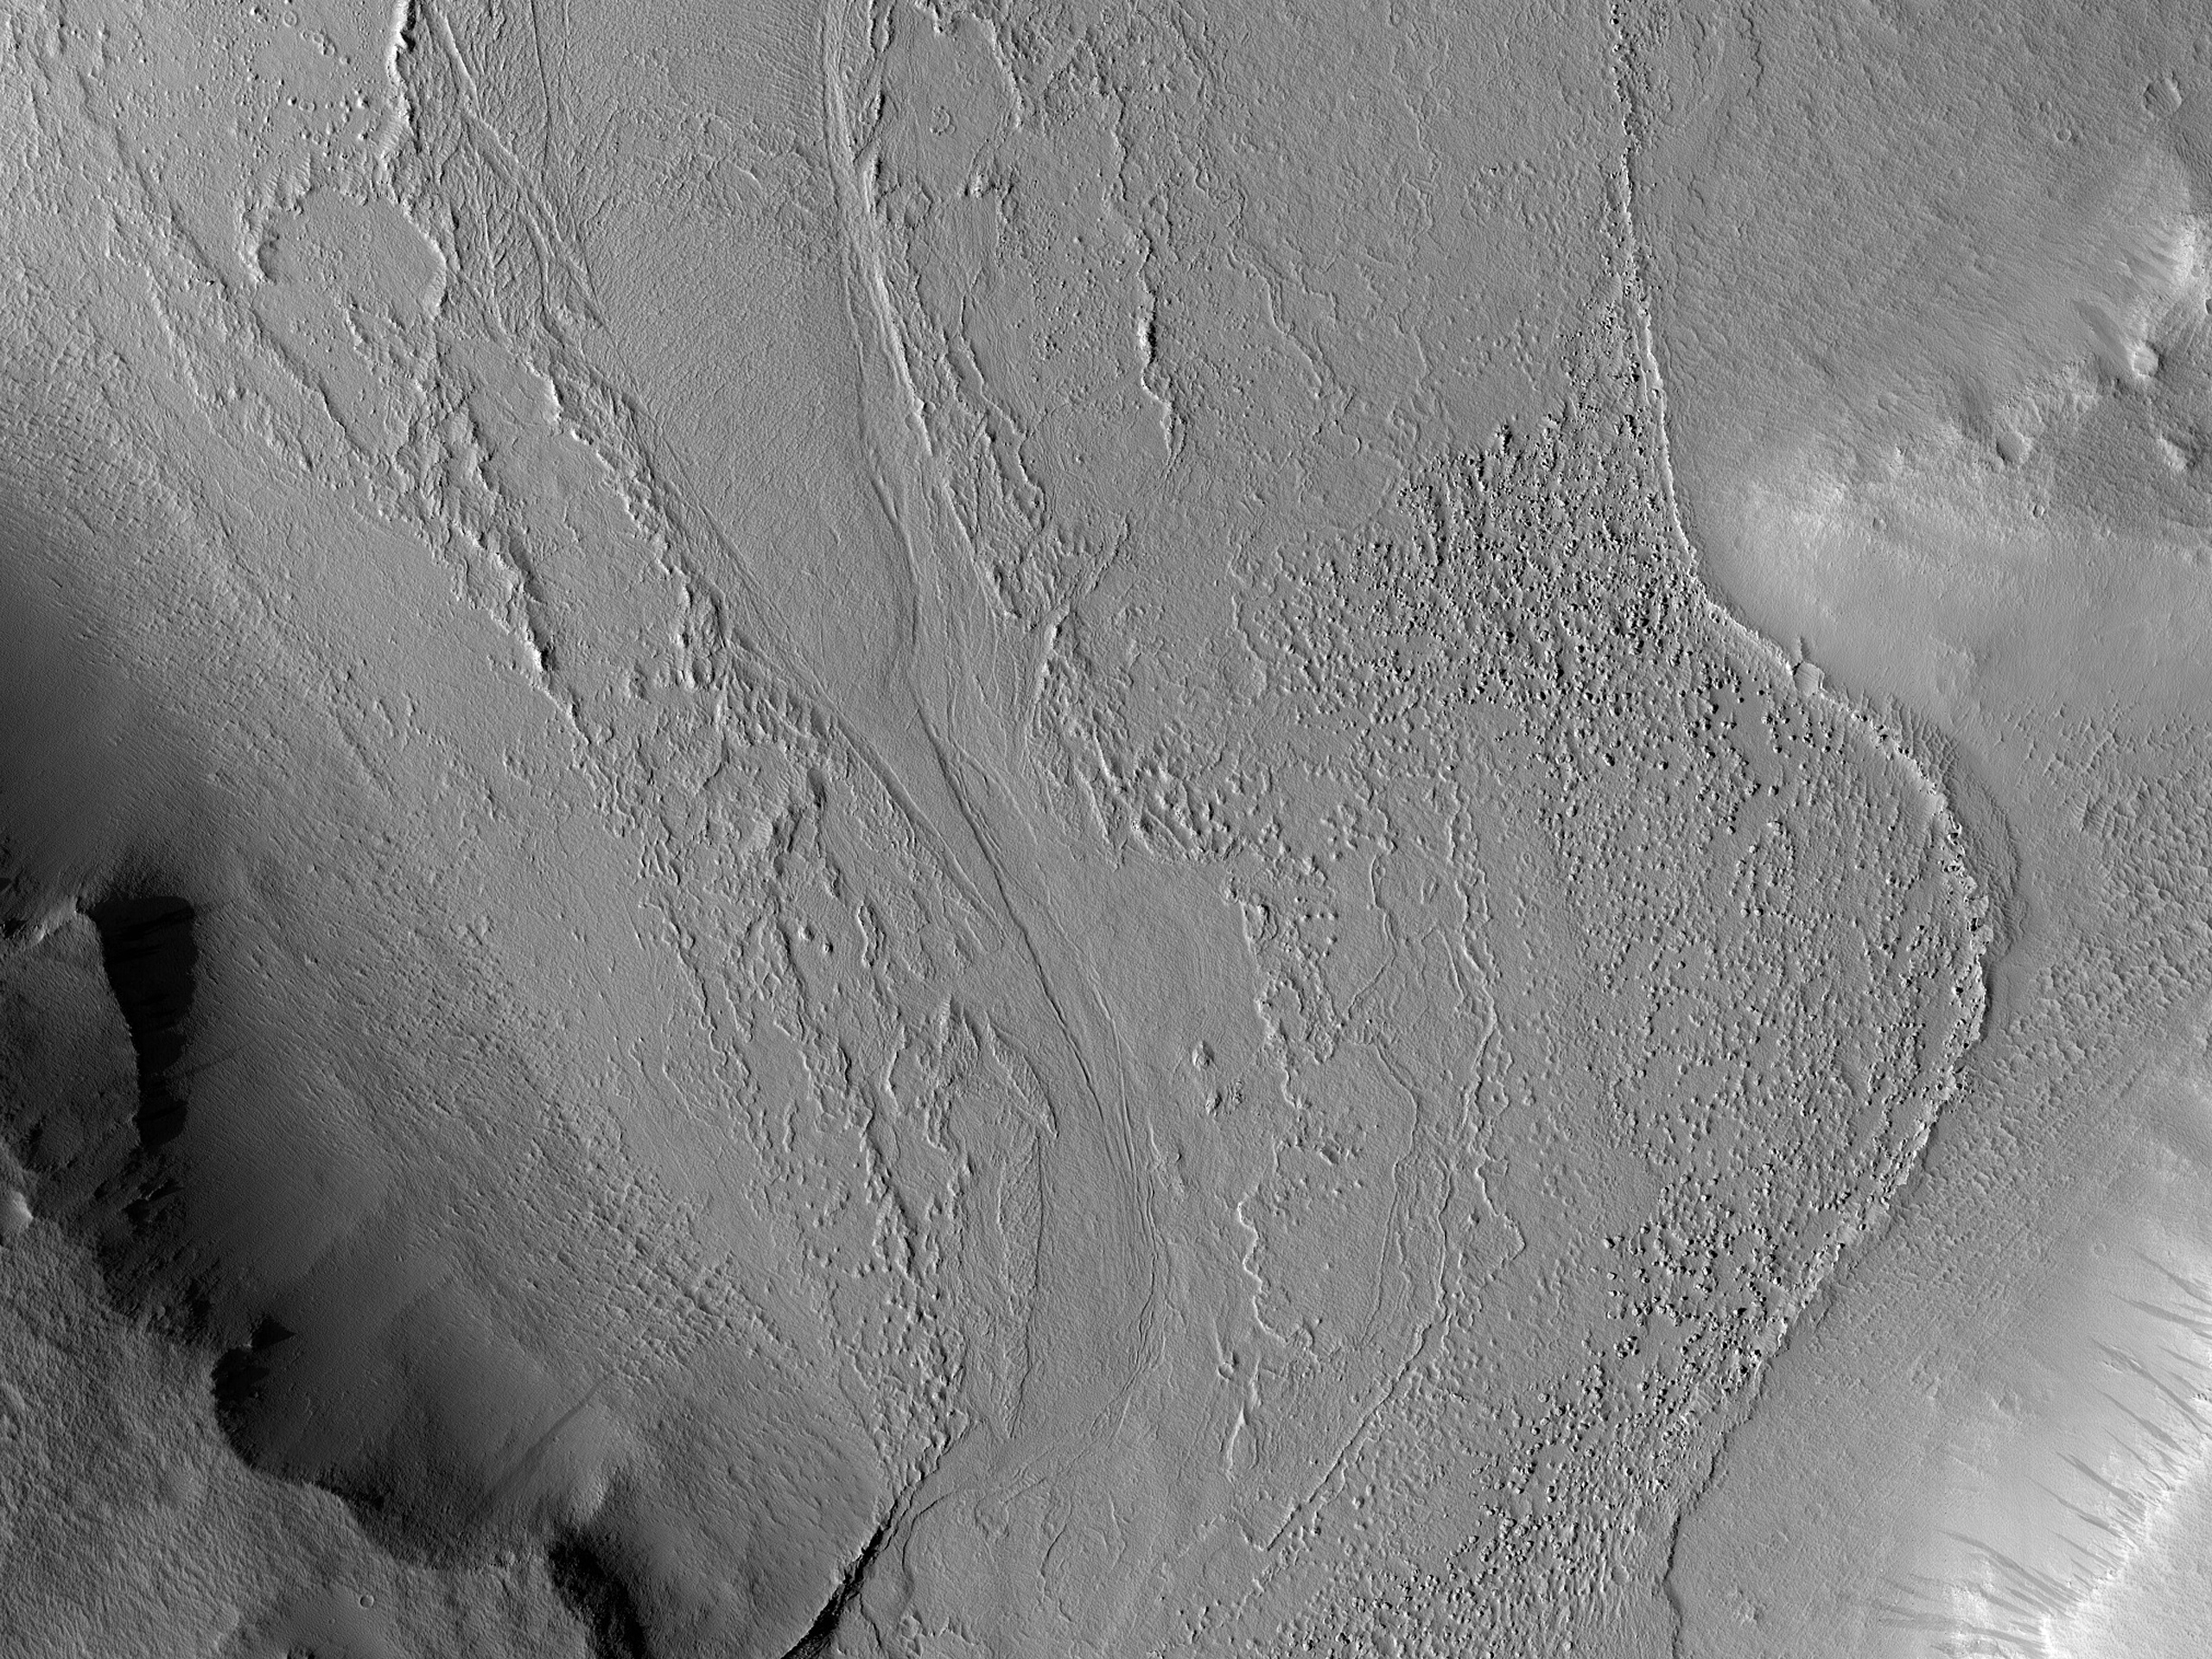 Small Channel in Tartarus Colles